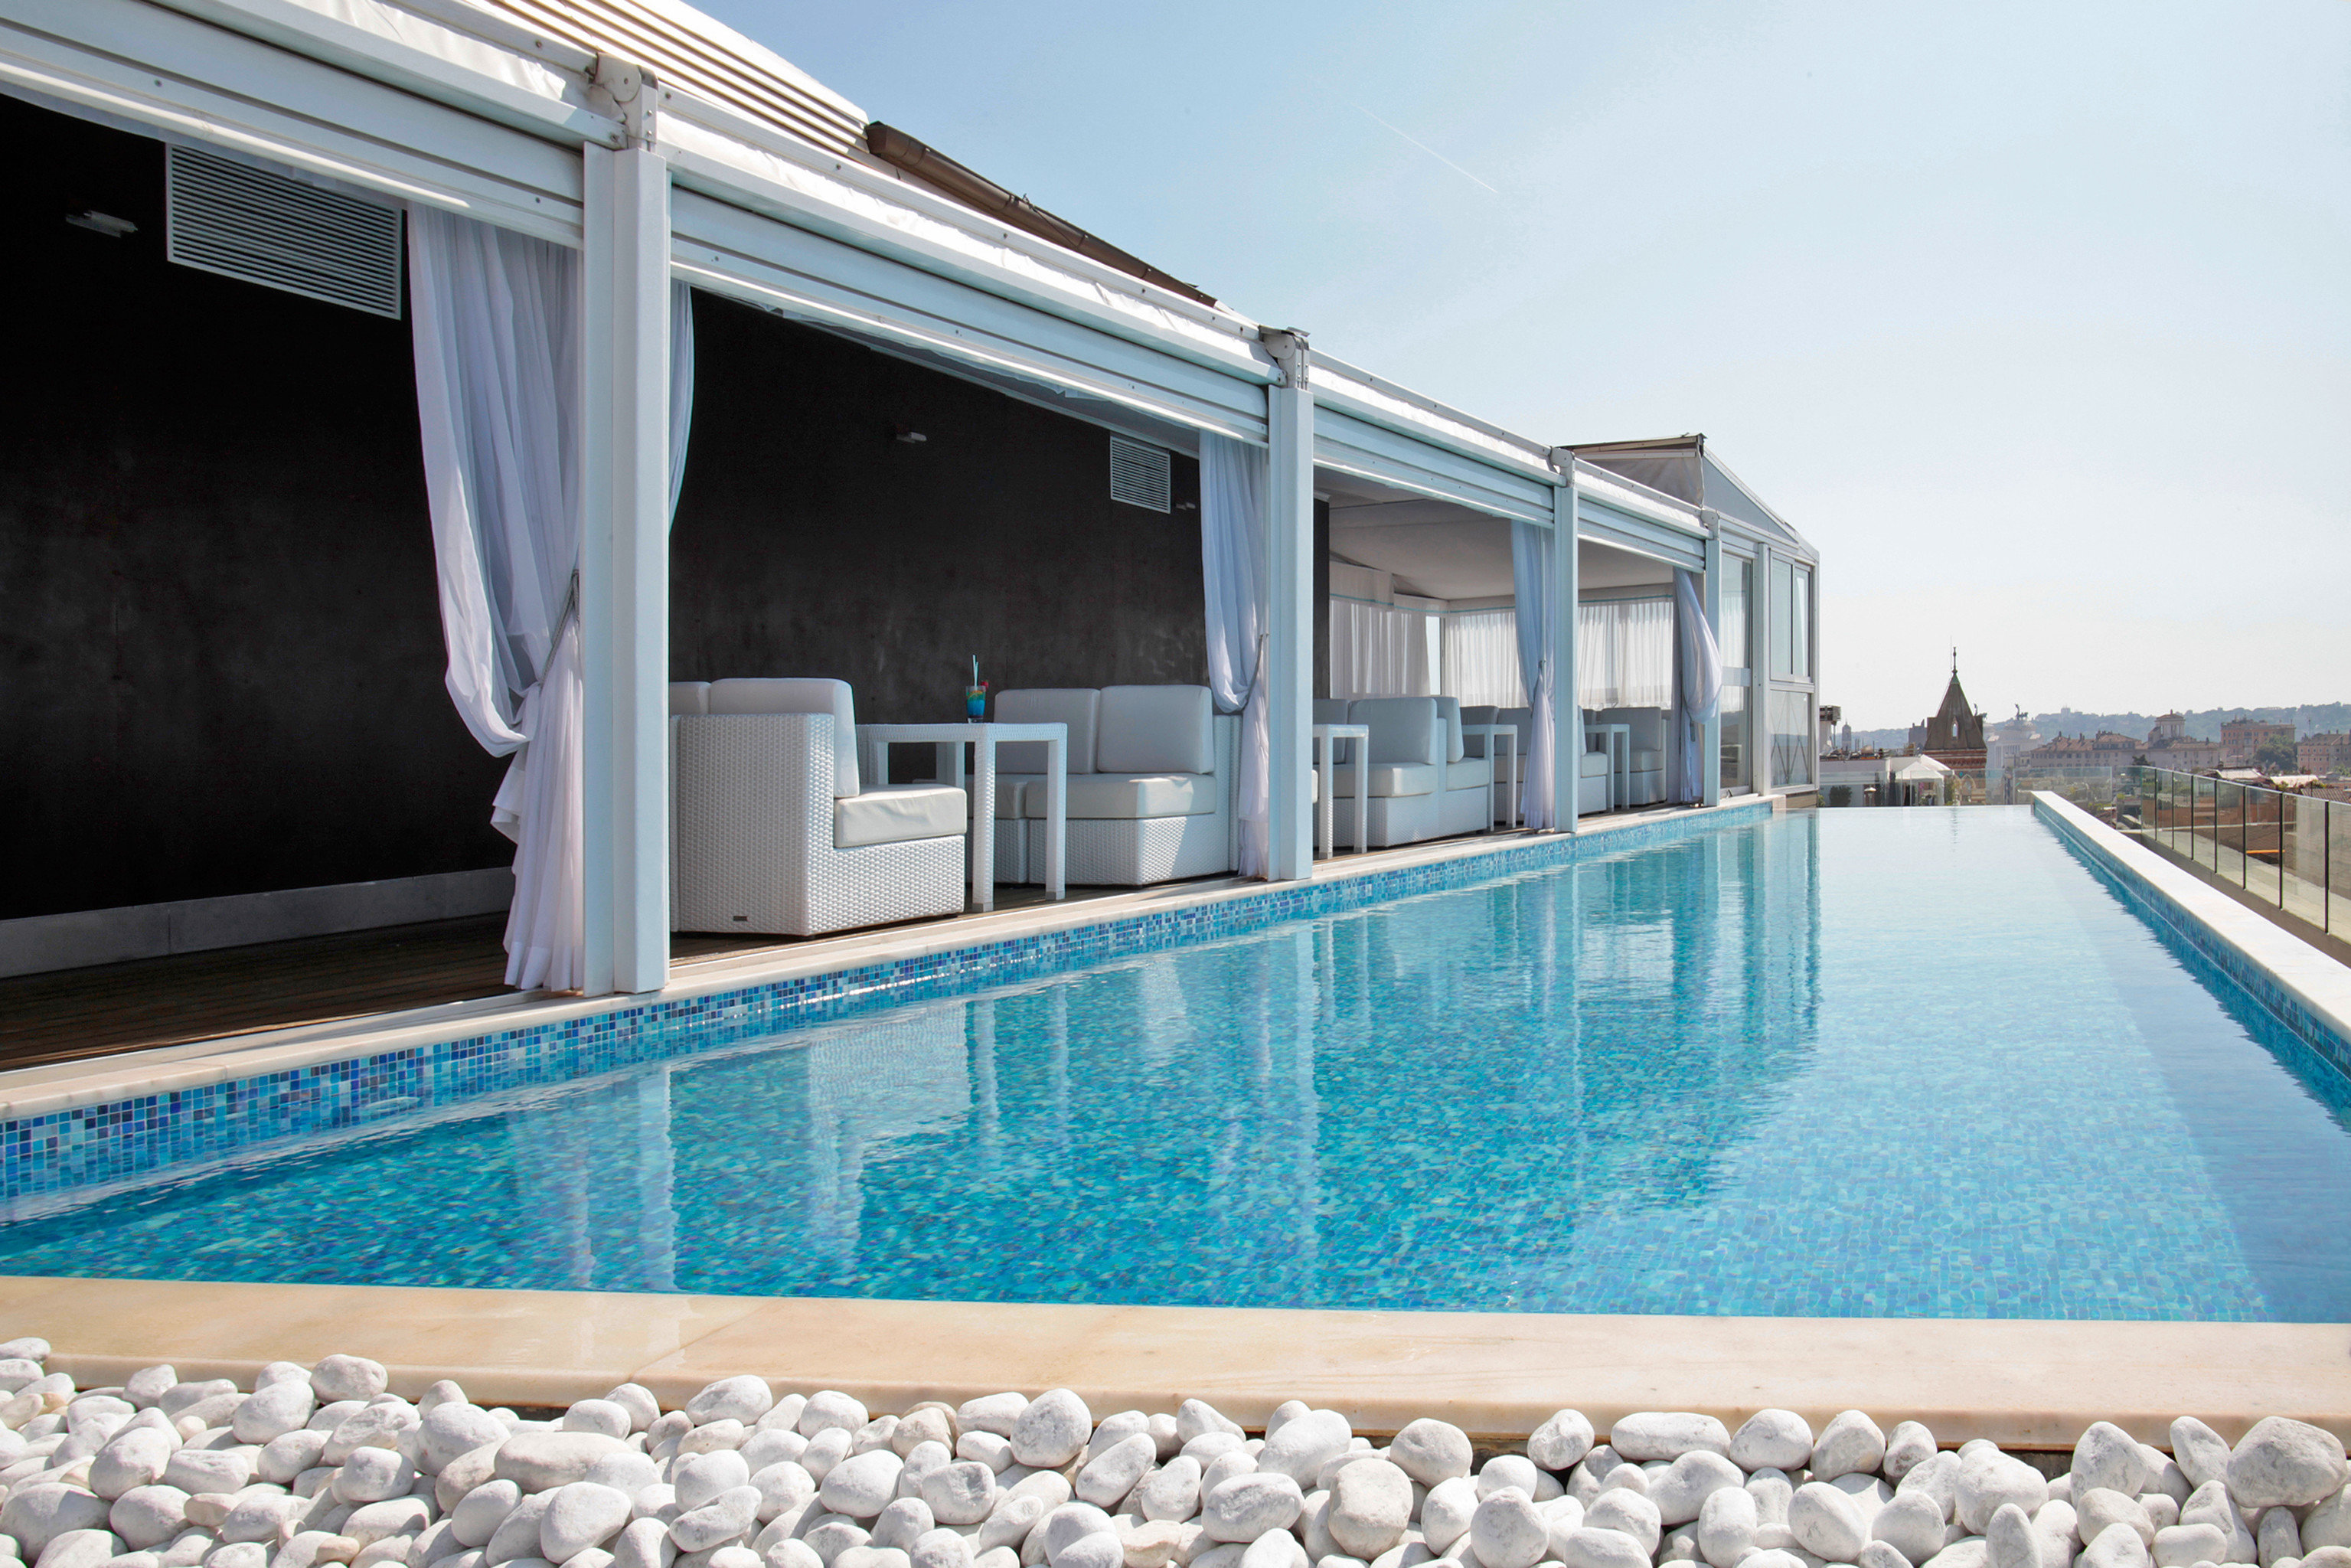 Boutique Hotels City Elegant Italy Luxury Luxury Travel Pool Romantic Hotels Rome Rooftop sky swimming pool property leisure blue Villa Resort home condominium